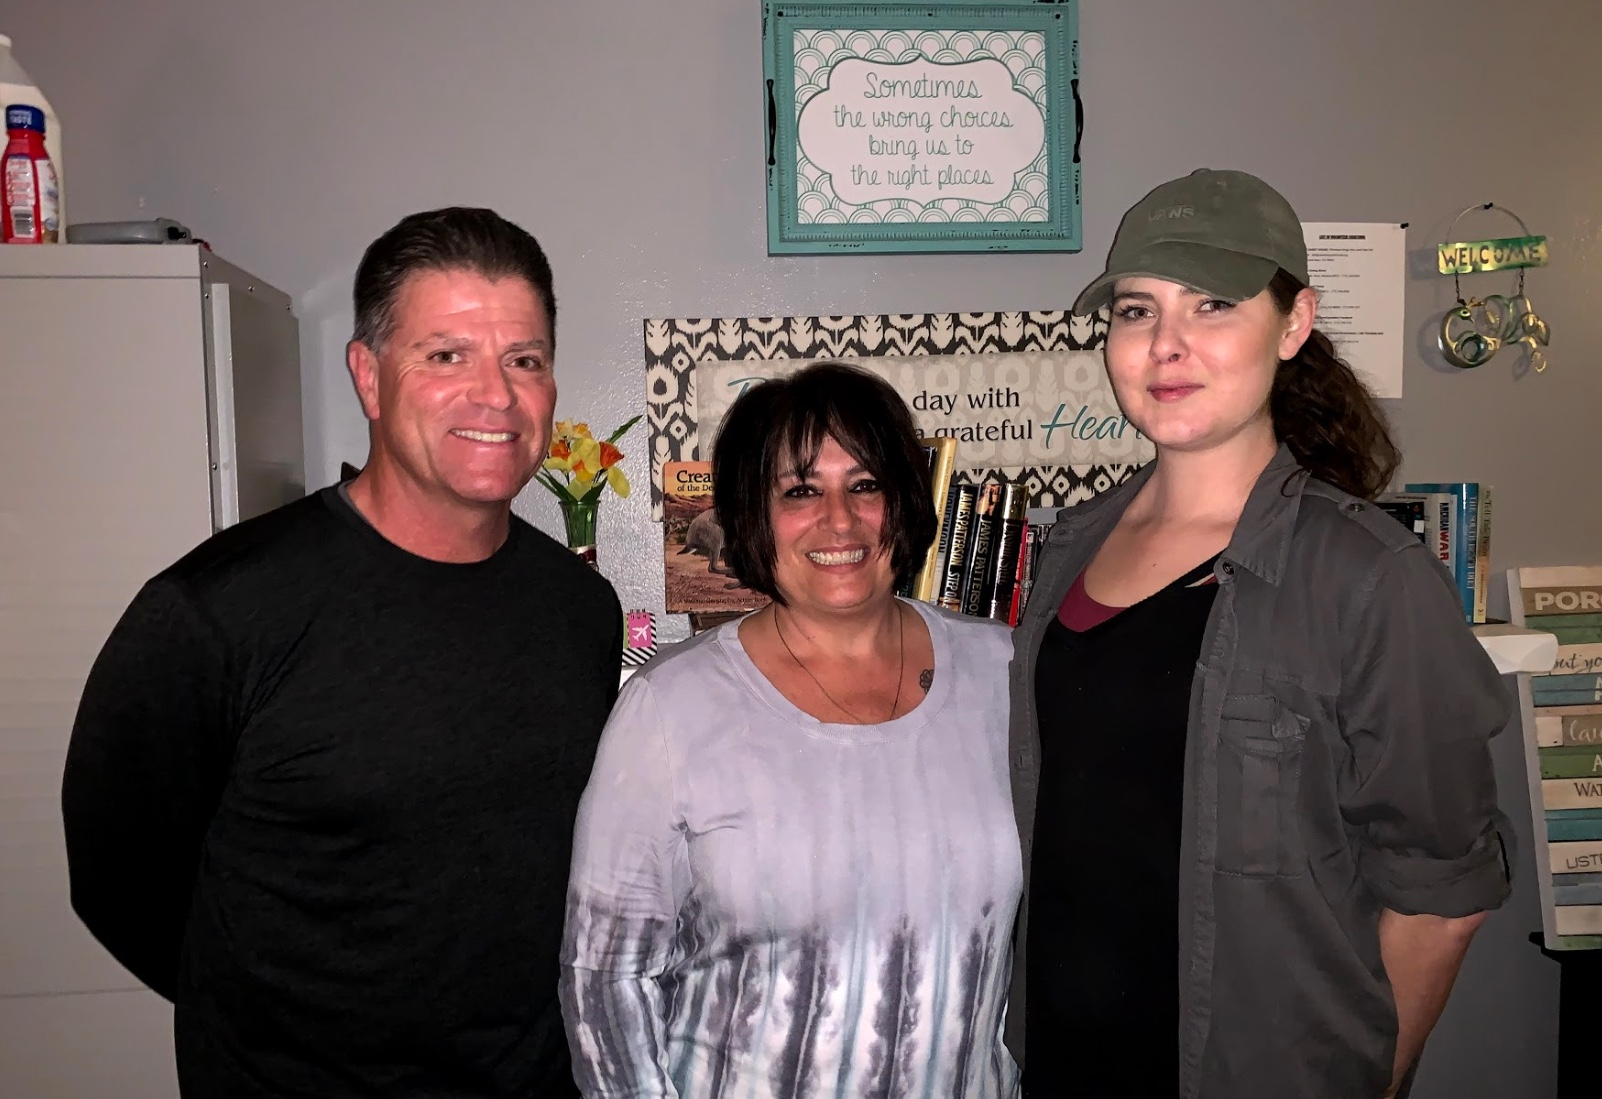 Stacey Payne (center) with two staff members Curt Torvick, Director of Operations, and Hannah Torvick, Housing First Model Program, started Lyfe Recovery Services in 2017, with different locations, as a model for affordable sober living homes in northern Nevada, to help those in recovery get housed and back on track.